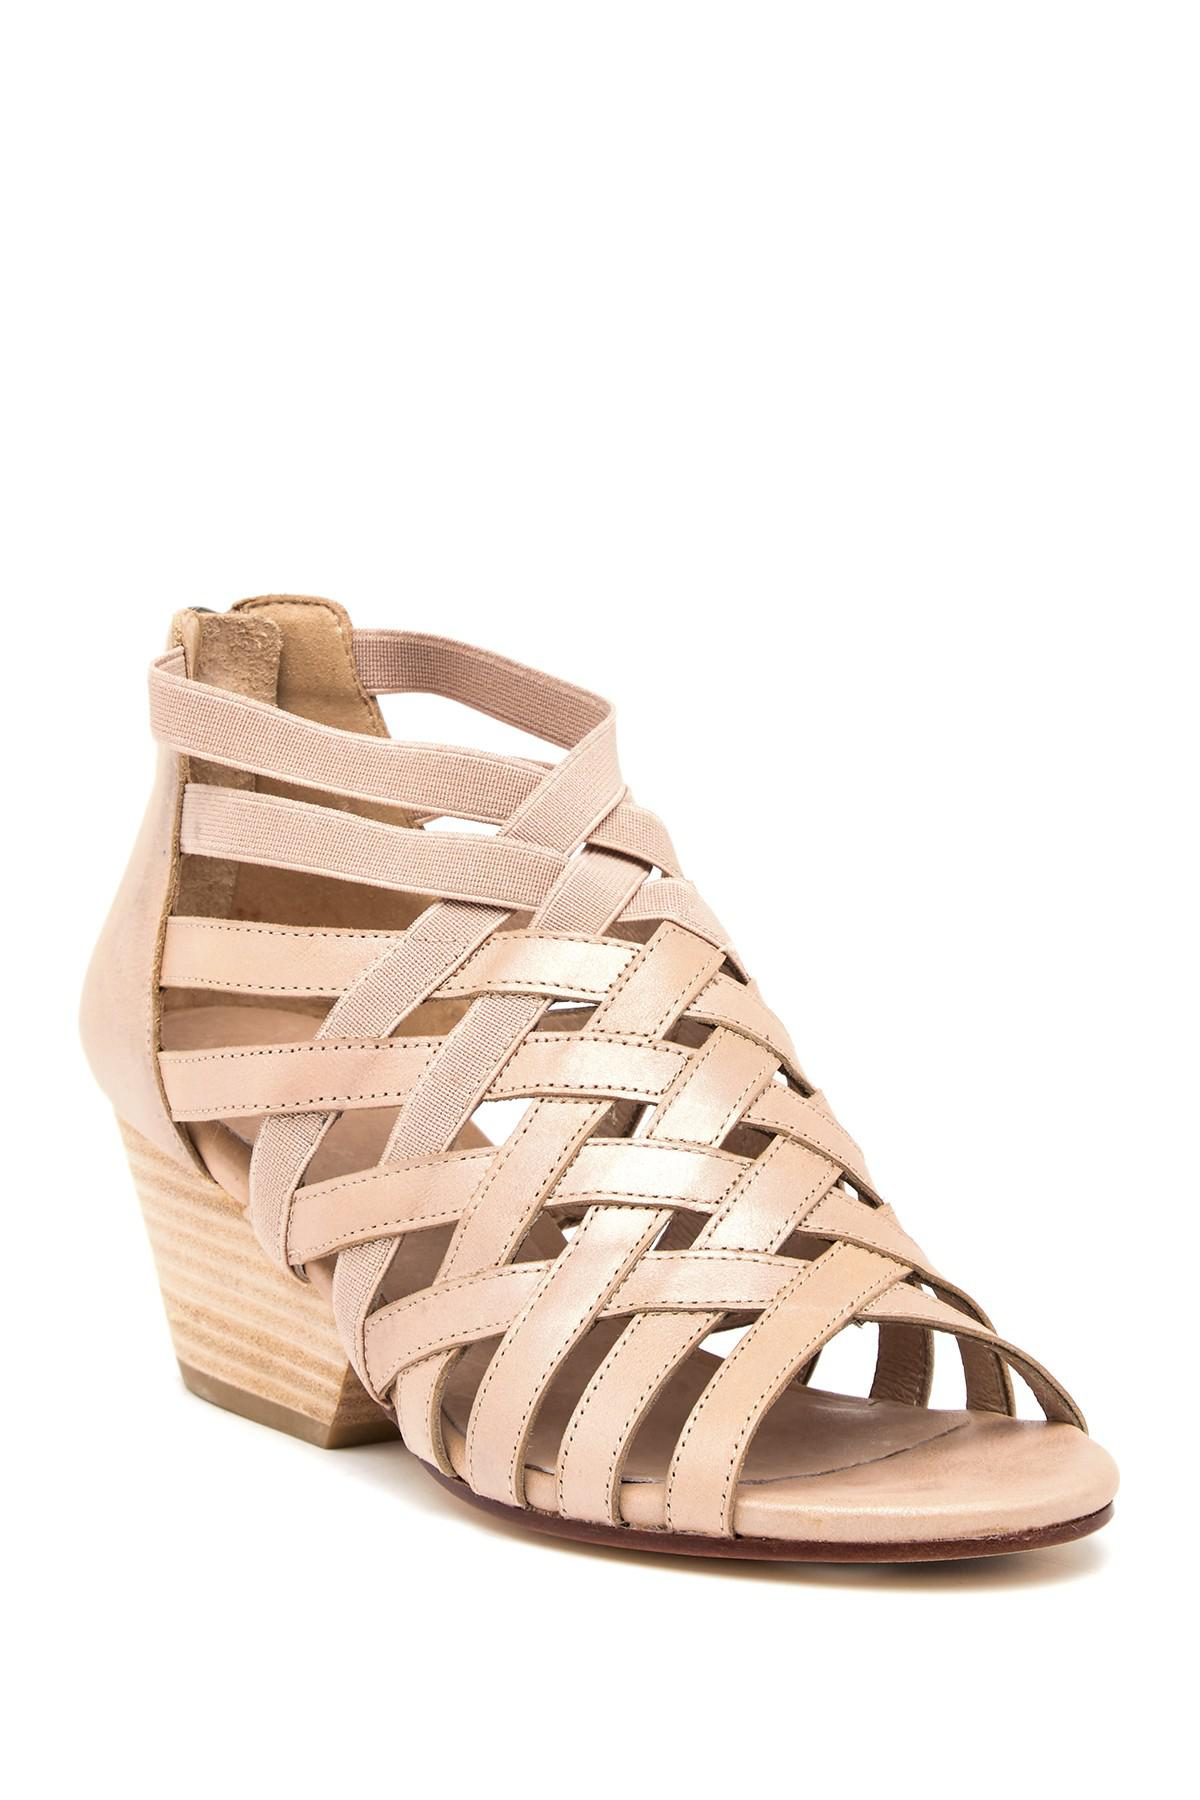 Eileen Fisher Oodle Metallic Sandal 6Rd1p